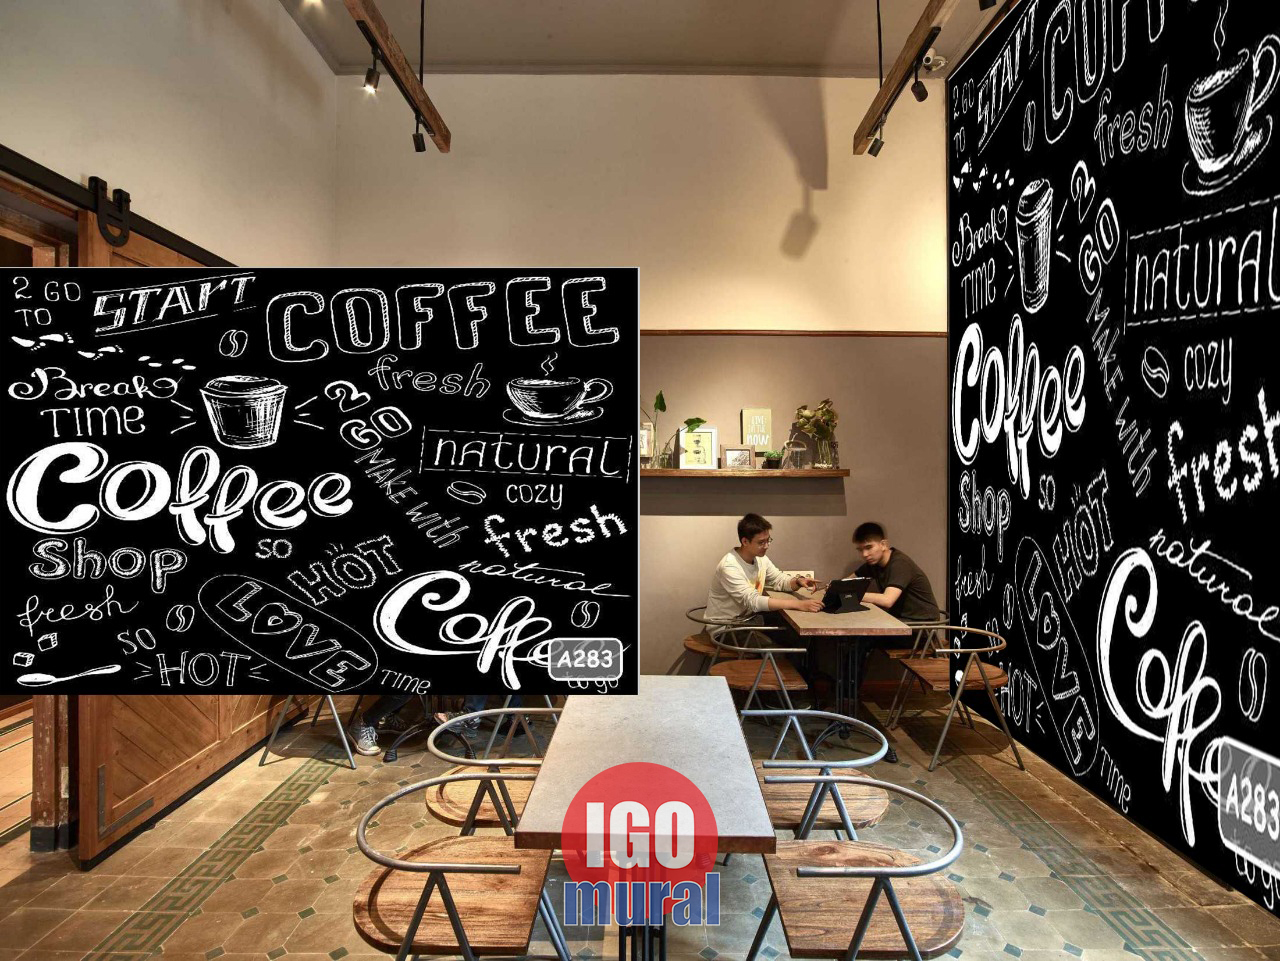 Wallpaper warung kopi